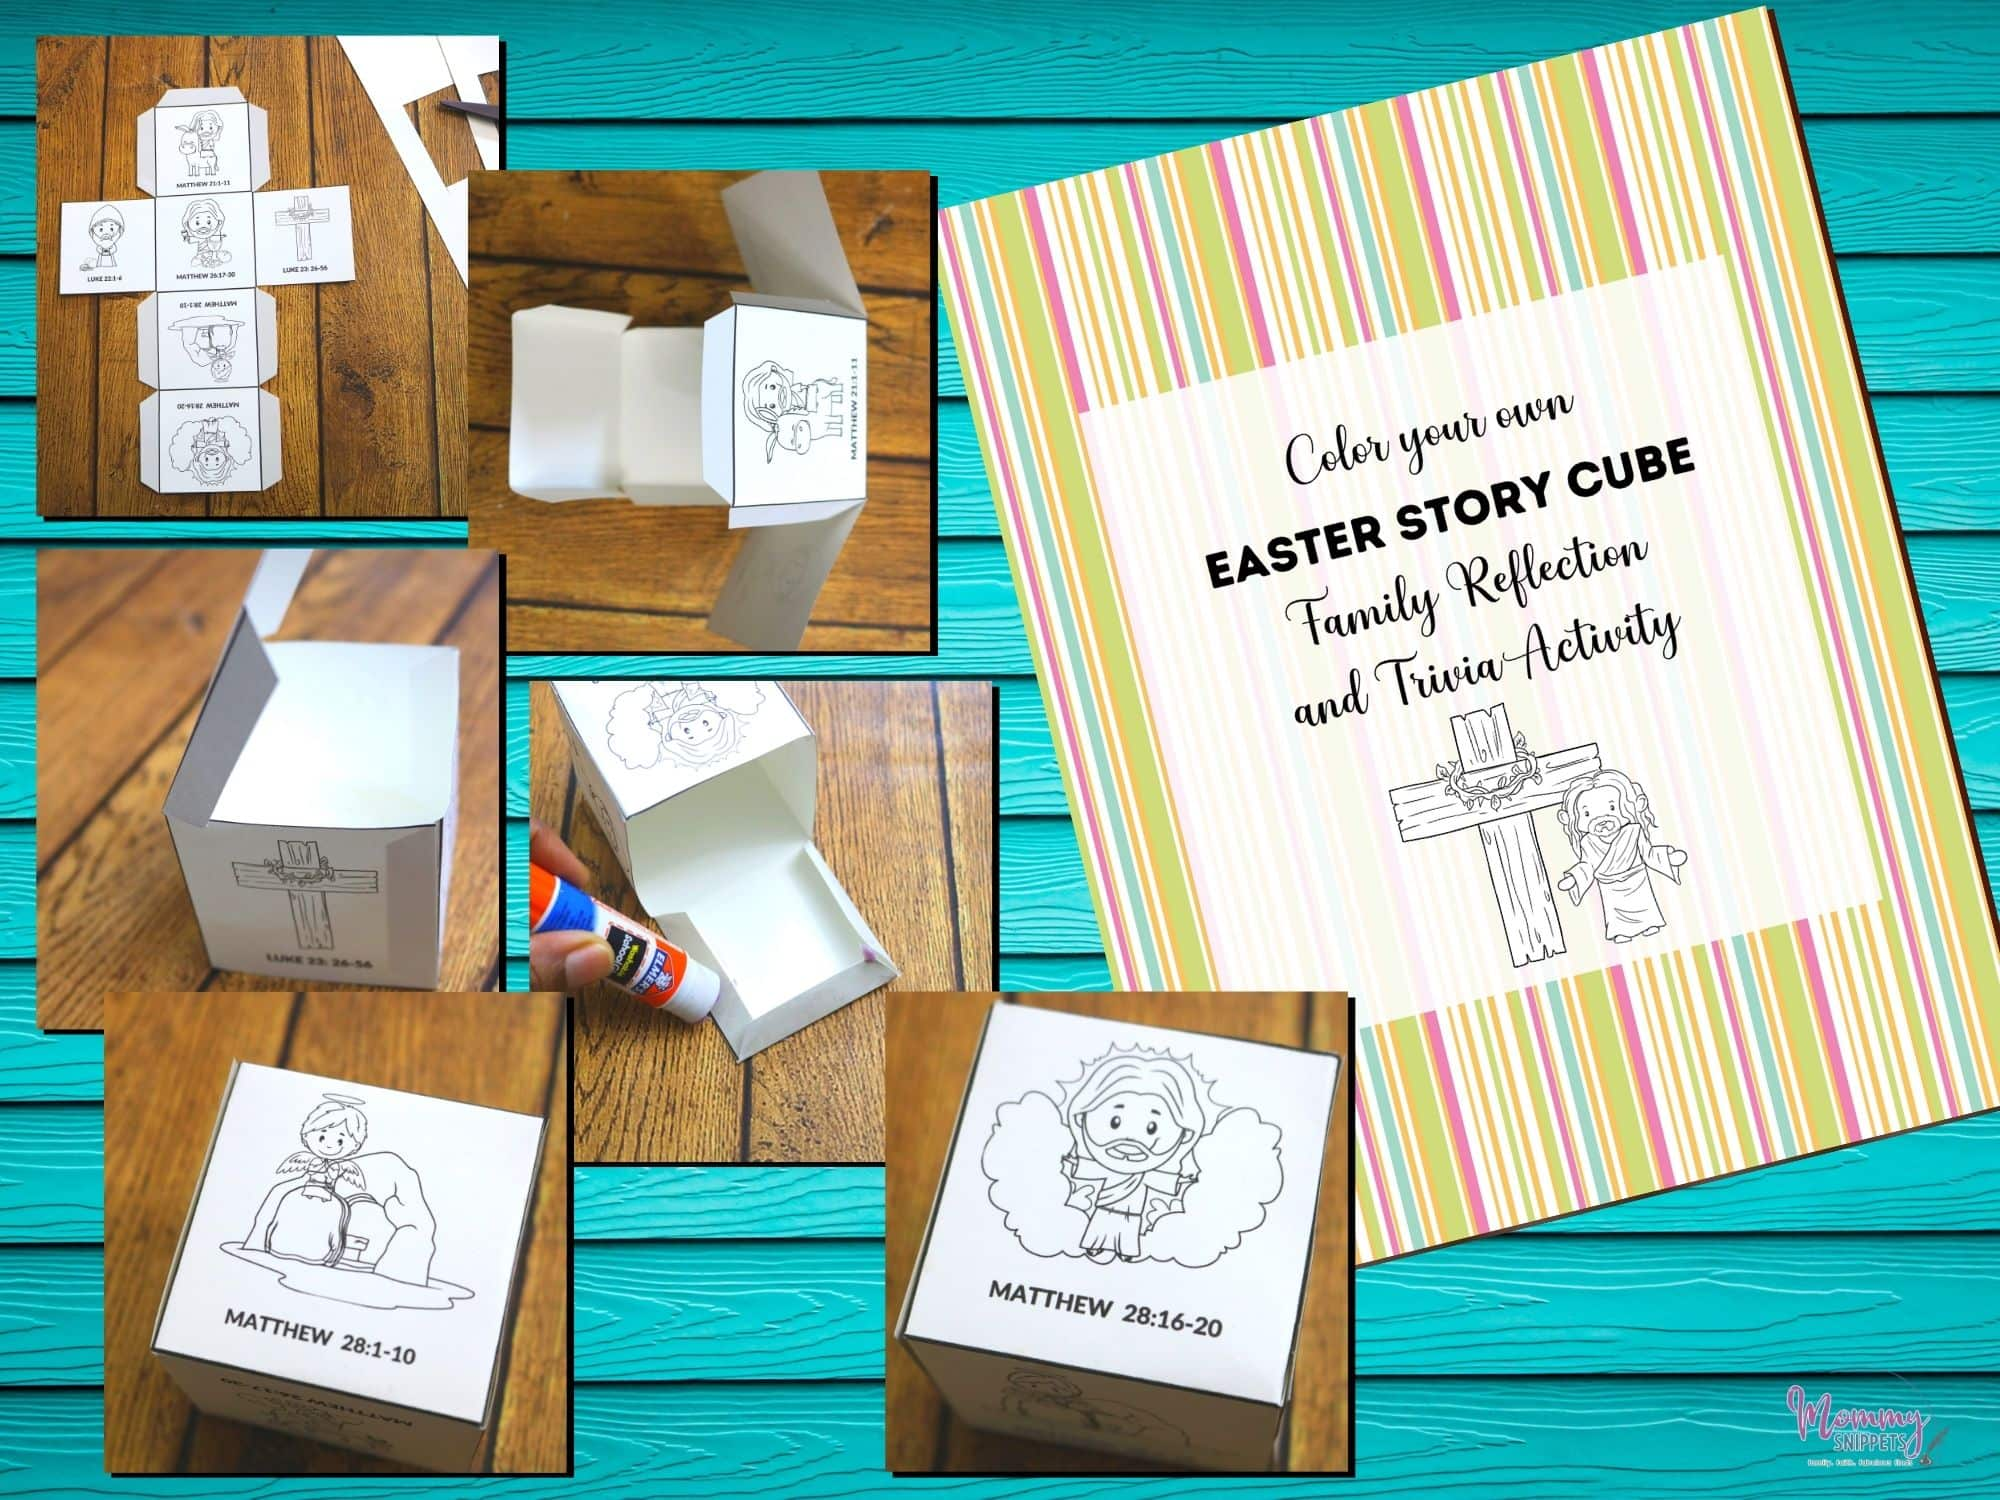 The Best Easter Story for Kids Story Cube Activity-MommySnippets.com